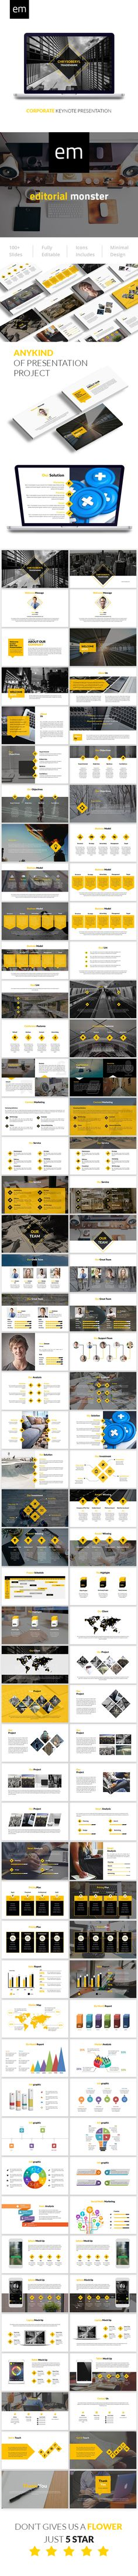 Corporate Keynote Presentation Template — Keynote KEY #advertisement #modern • Download ➝ https://graphicriver.net/item/corporate-keynote-presentation-template/18955816?ref=pxcr